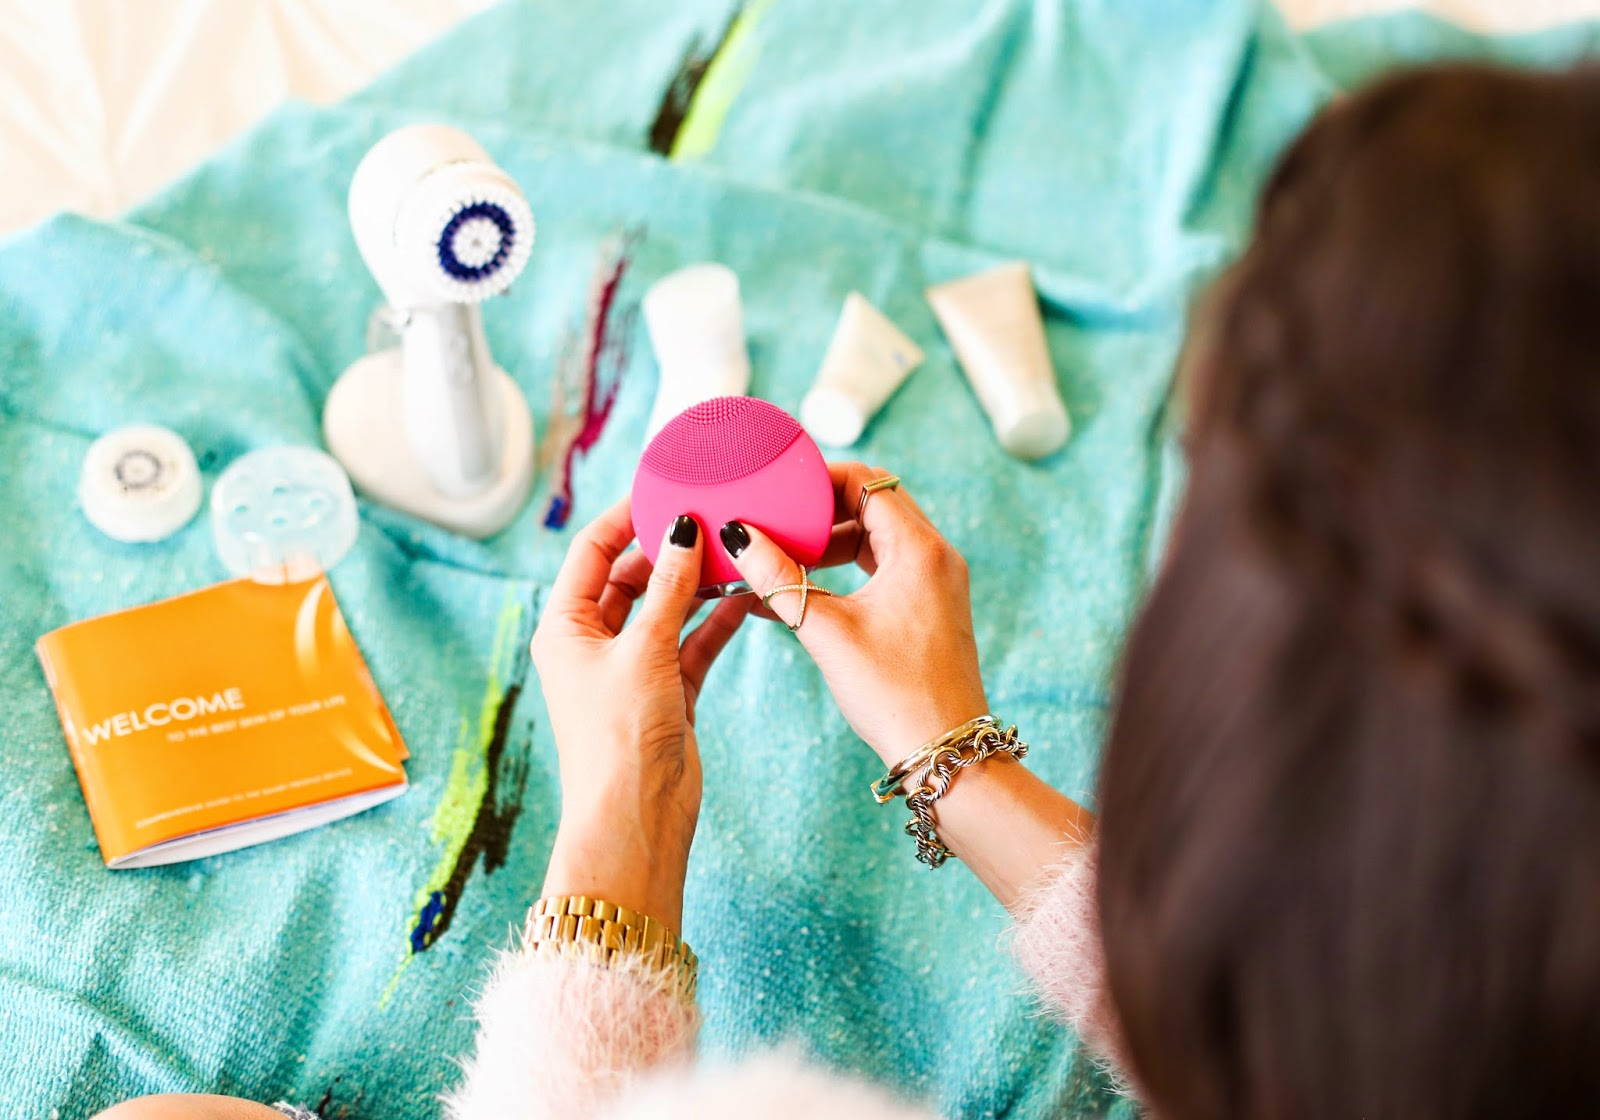 clinique sonic cleansing brush, clarisonic smart profile review, emily gemma blog, the sweetest thing blog, emily gemma skincare, foreo luna mini, foreo luna mini review